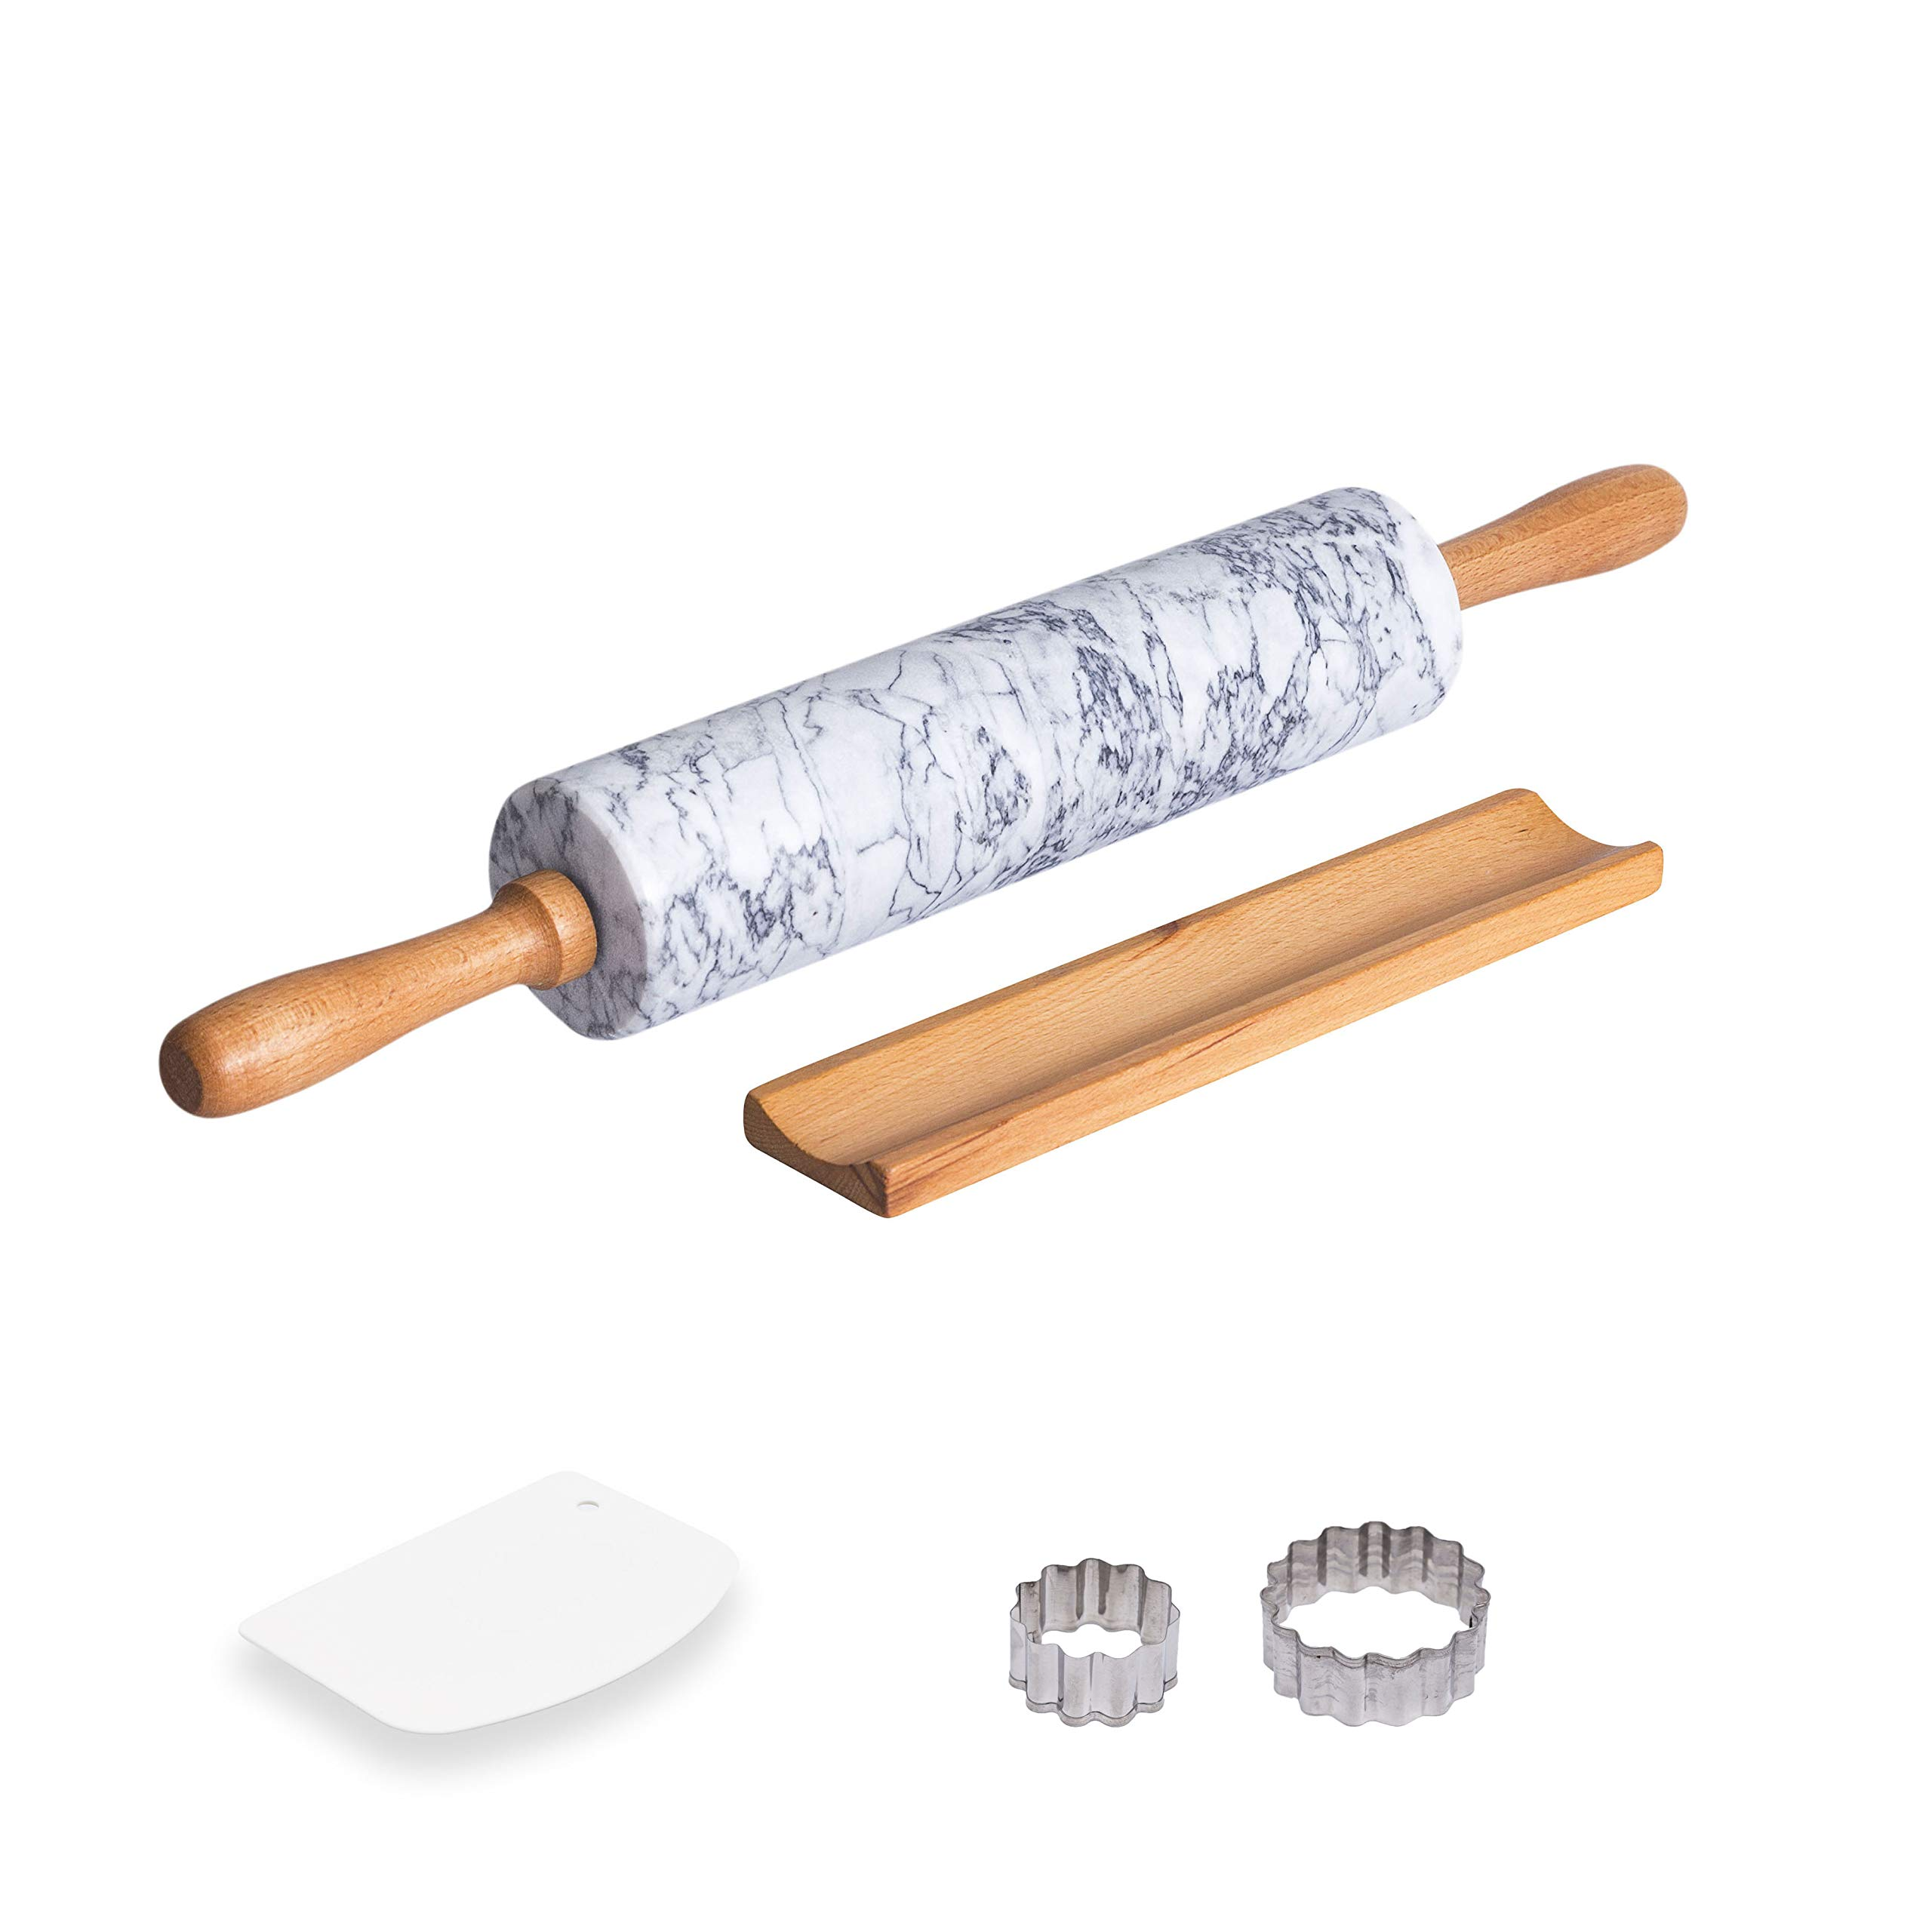 COZYMAT Marble Rolling Pin Non-stick, with Wood Stand for Fondant/Dough/Baking, Heavy and Solid Stone, White, 18 Inch, 10'' long barrel